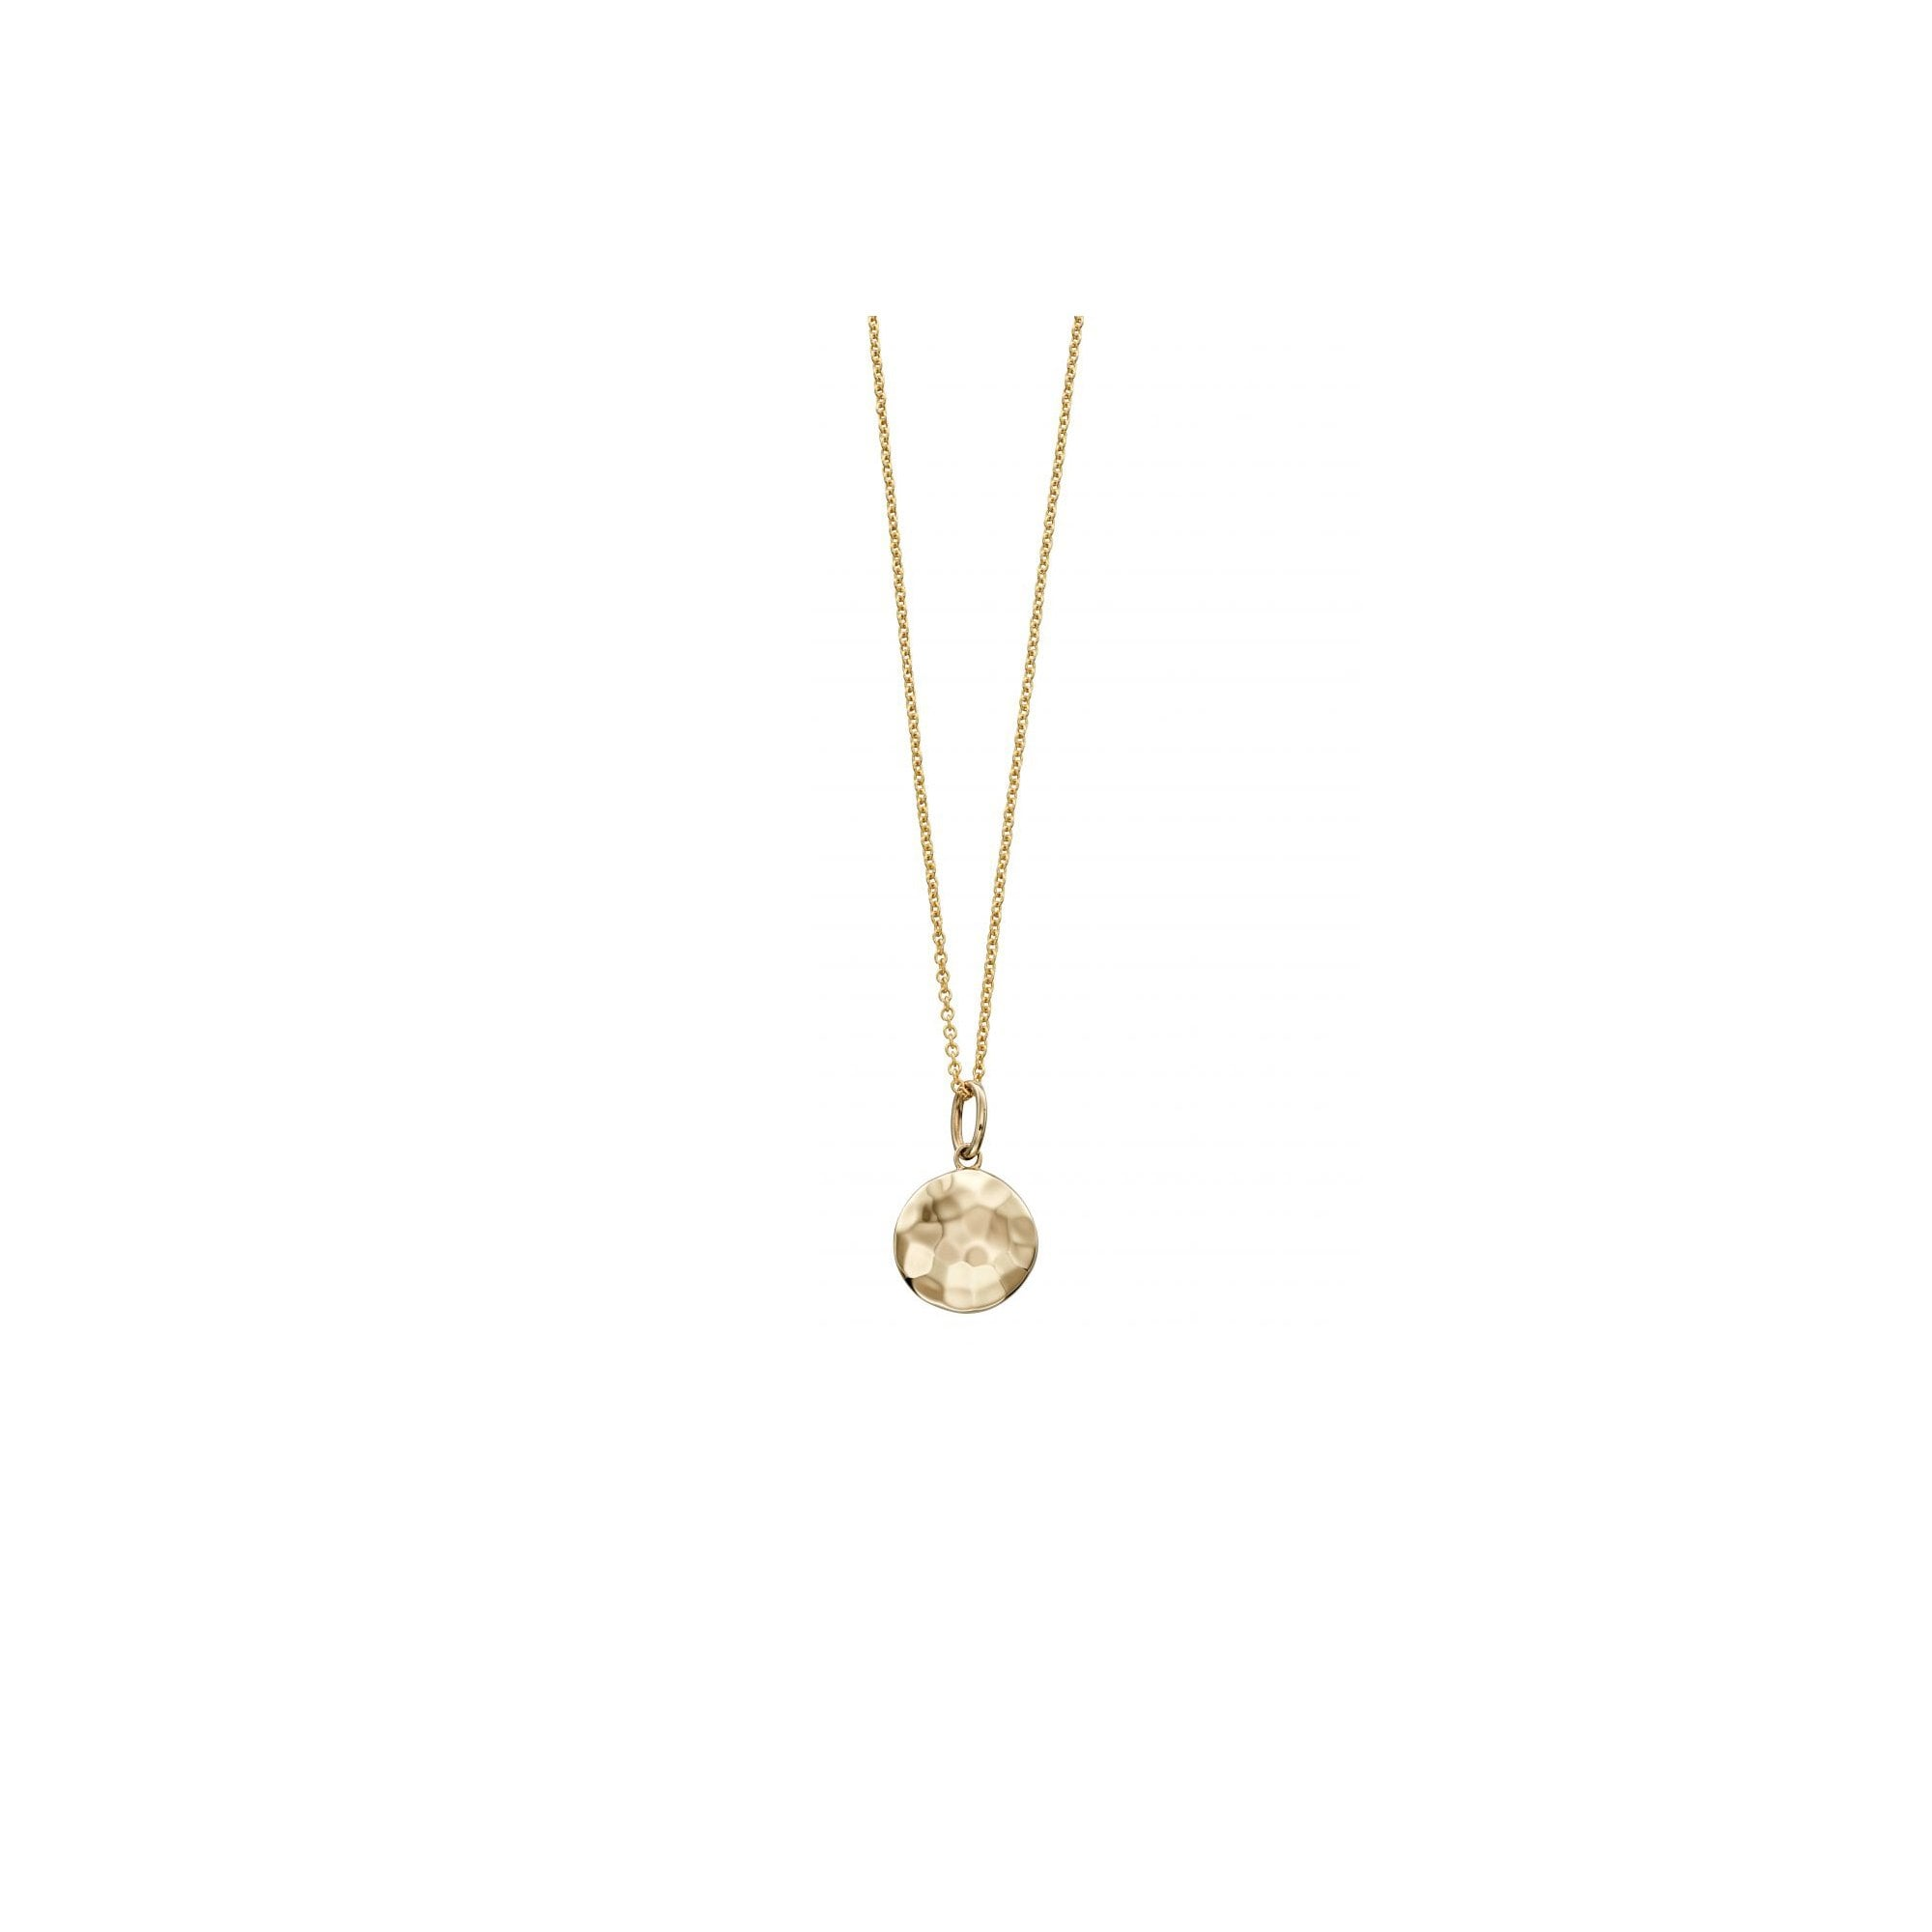 7061c98ec2b87 9ct Yellow Gold Hammered Round Domed Disc Pendant and Chain